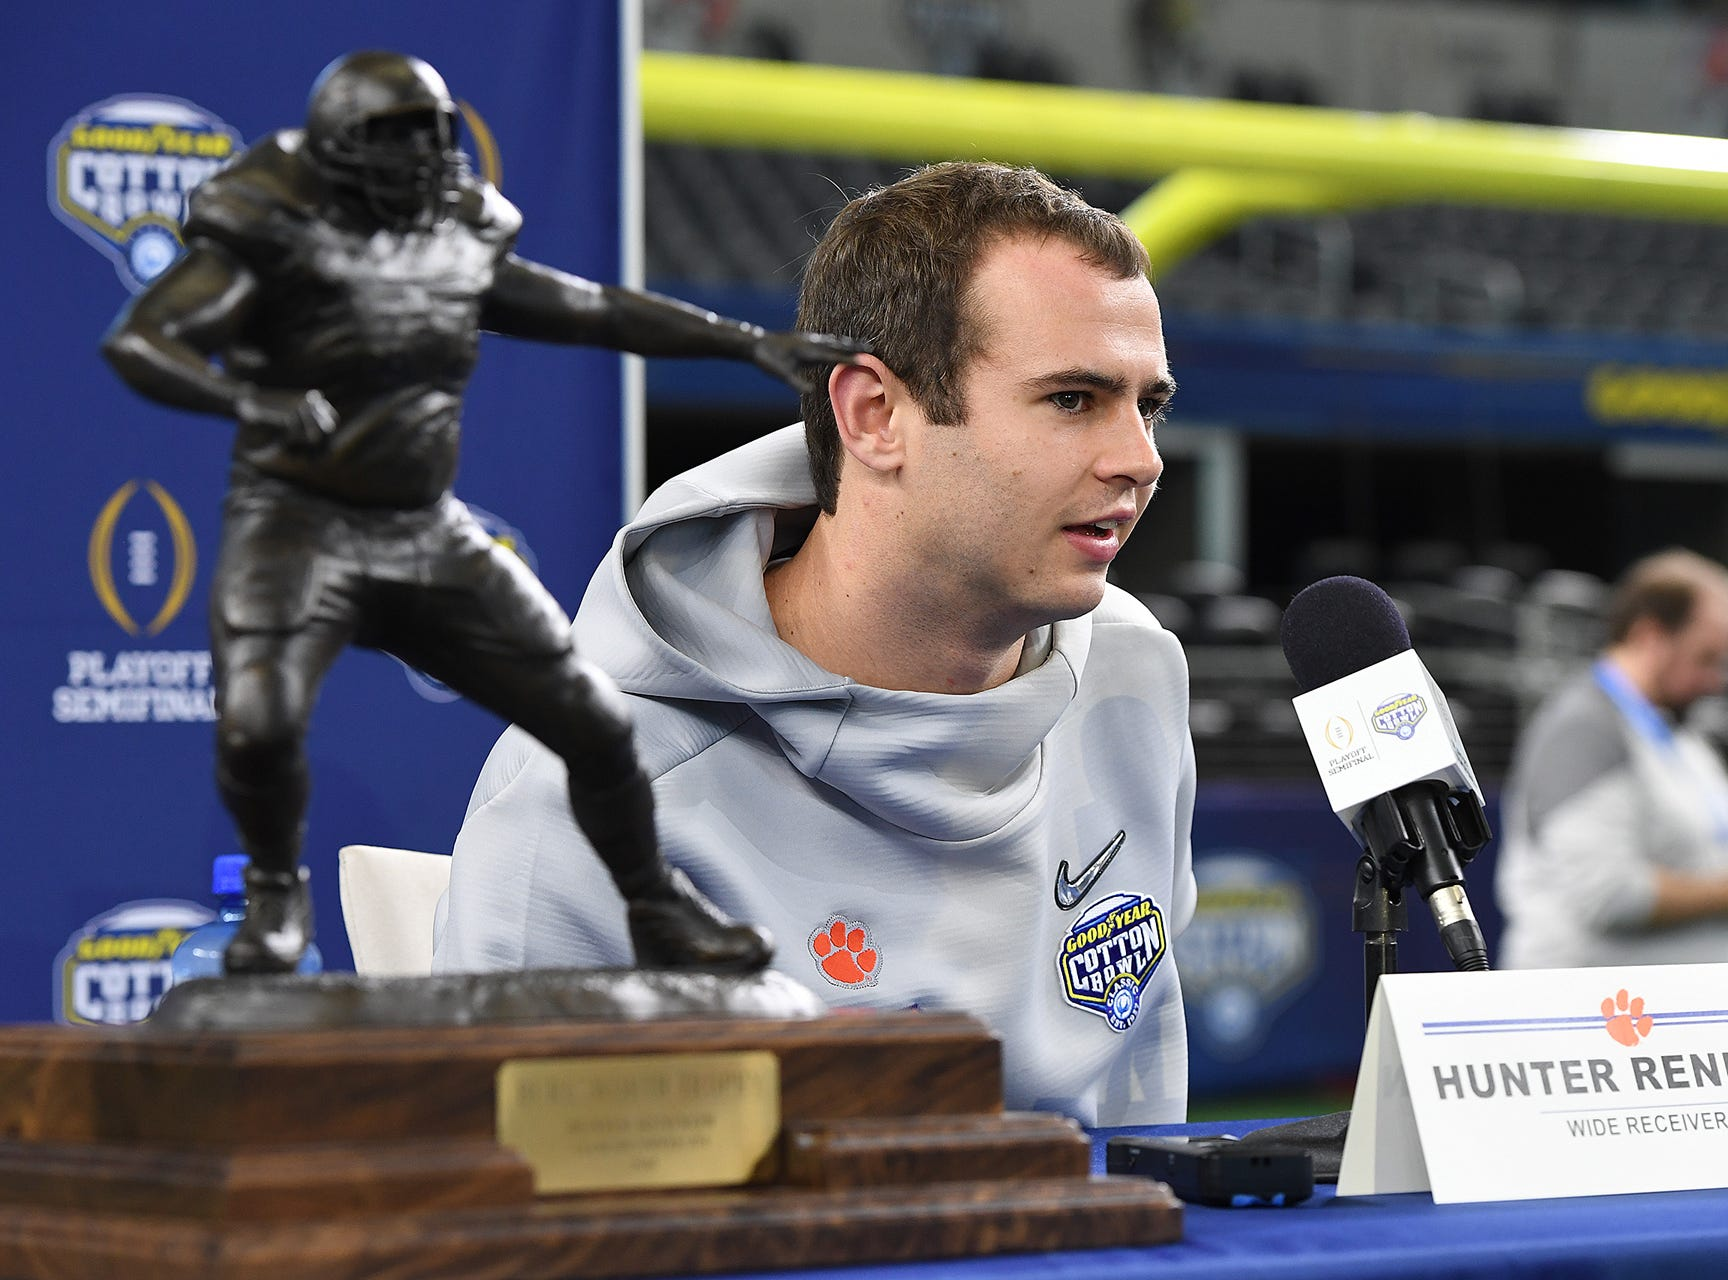 Clemson wide receiver Hunter Renfrow (13) answers questions during the Tigers Cotton Bowl media day at AT&T Stadium in Arlington, TX Thursday, December 27, 2018.